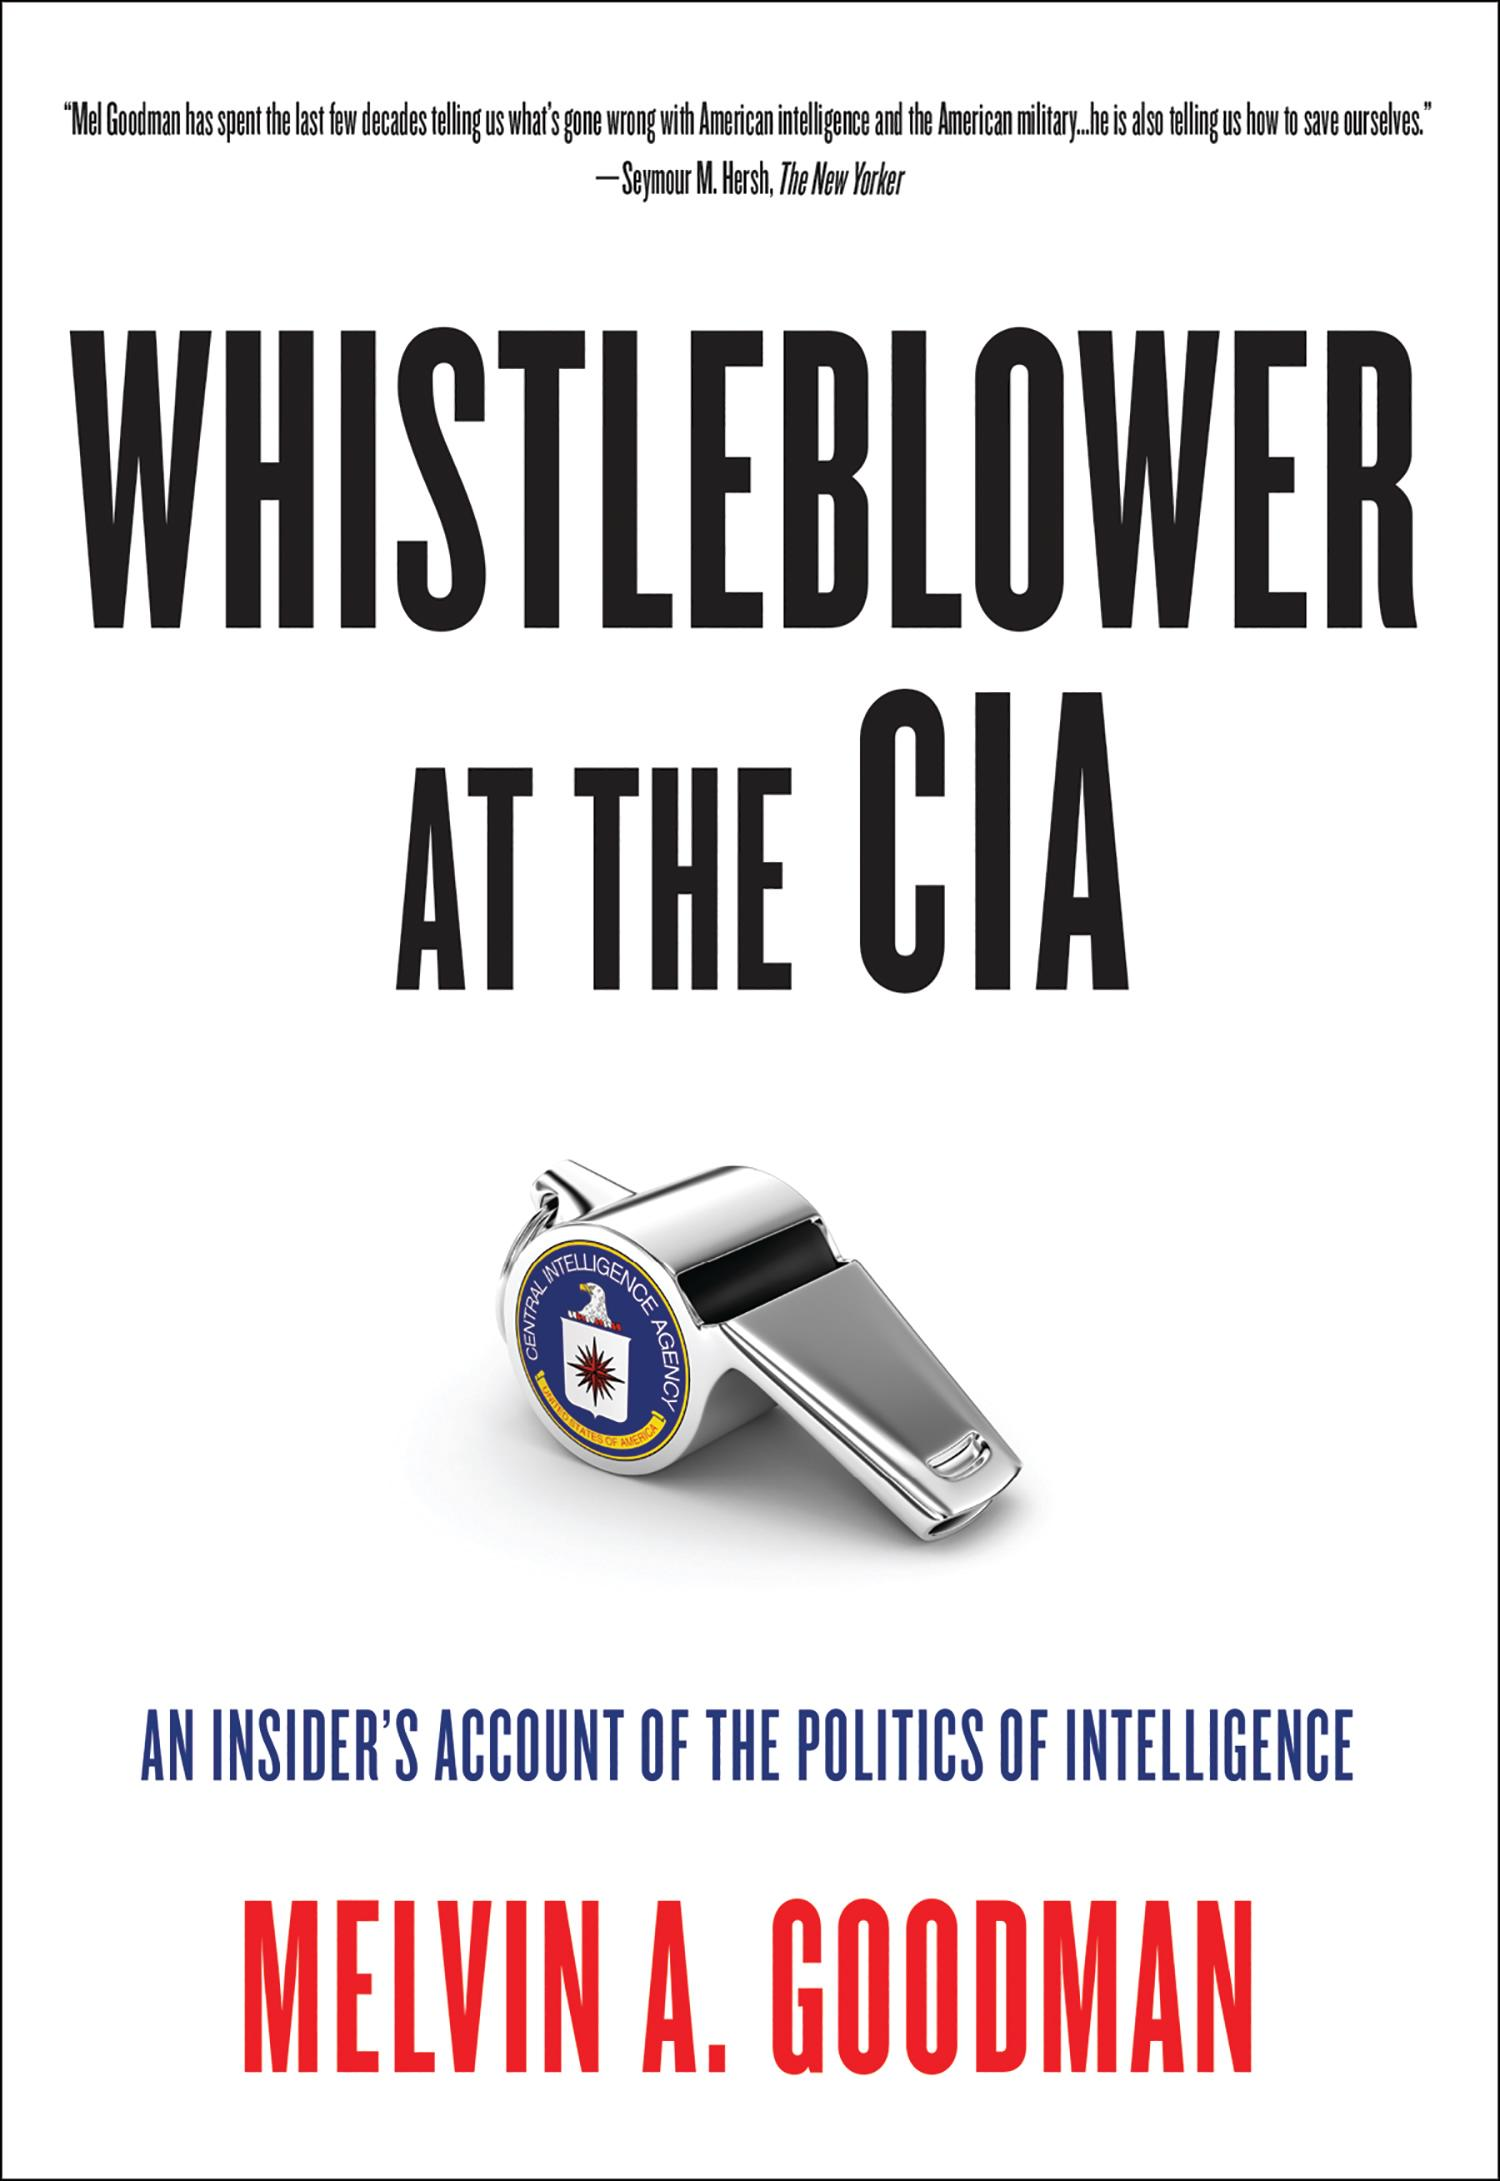 Whistleblower at the CIA: An Insider's Account of the Politics of Intelligence